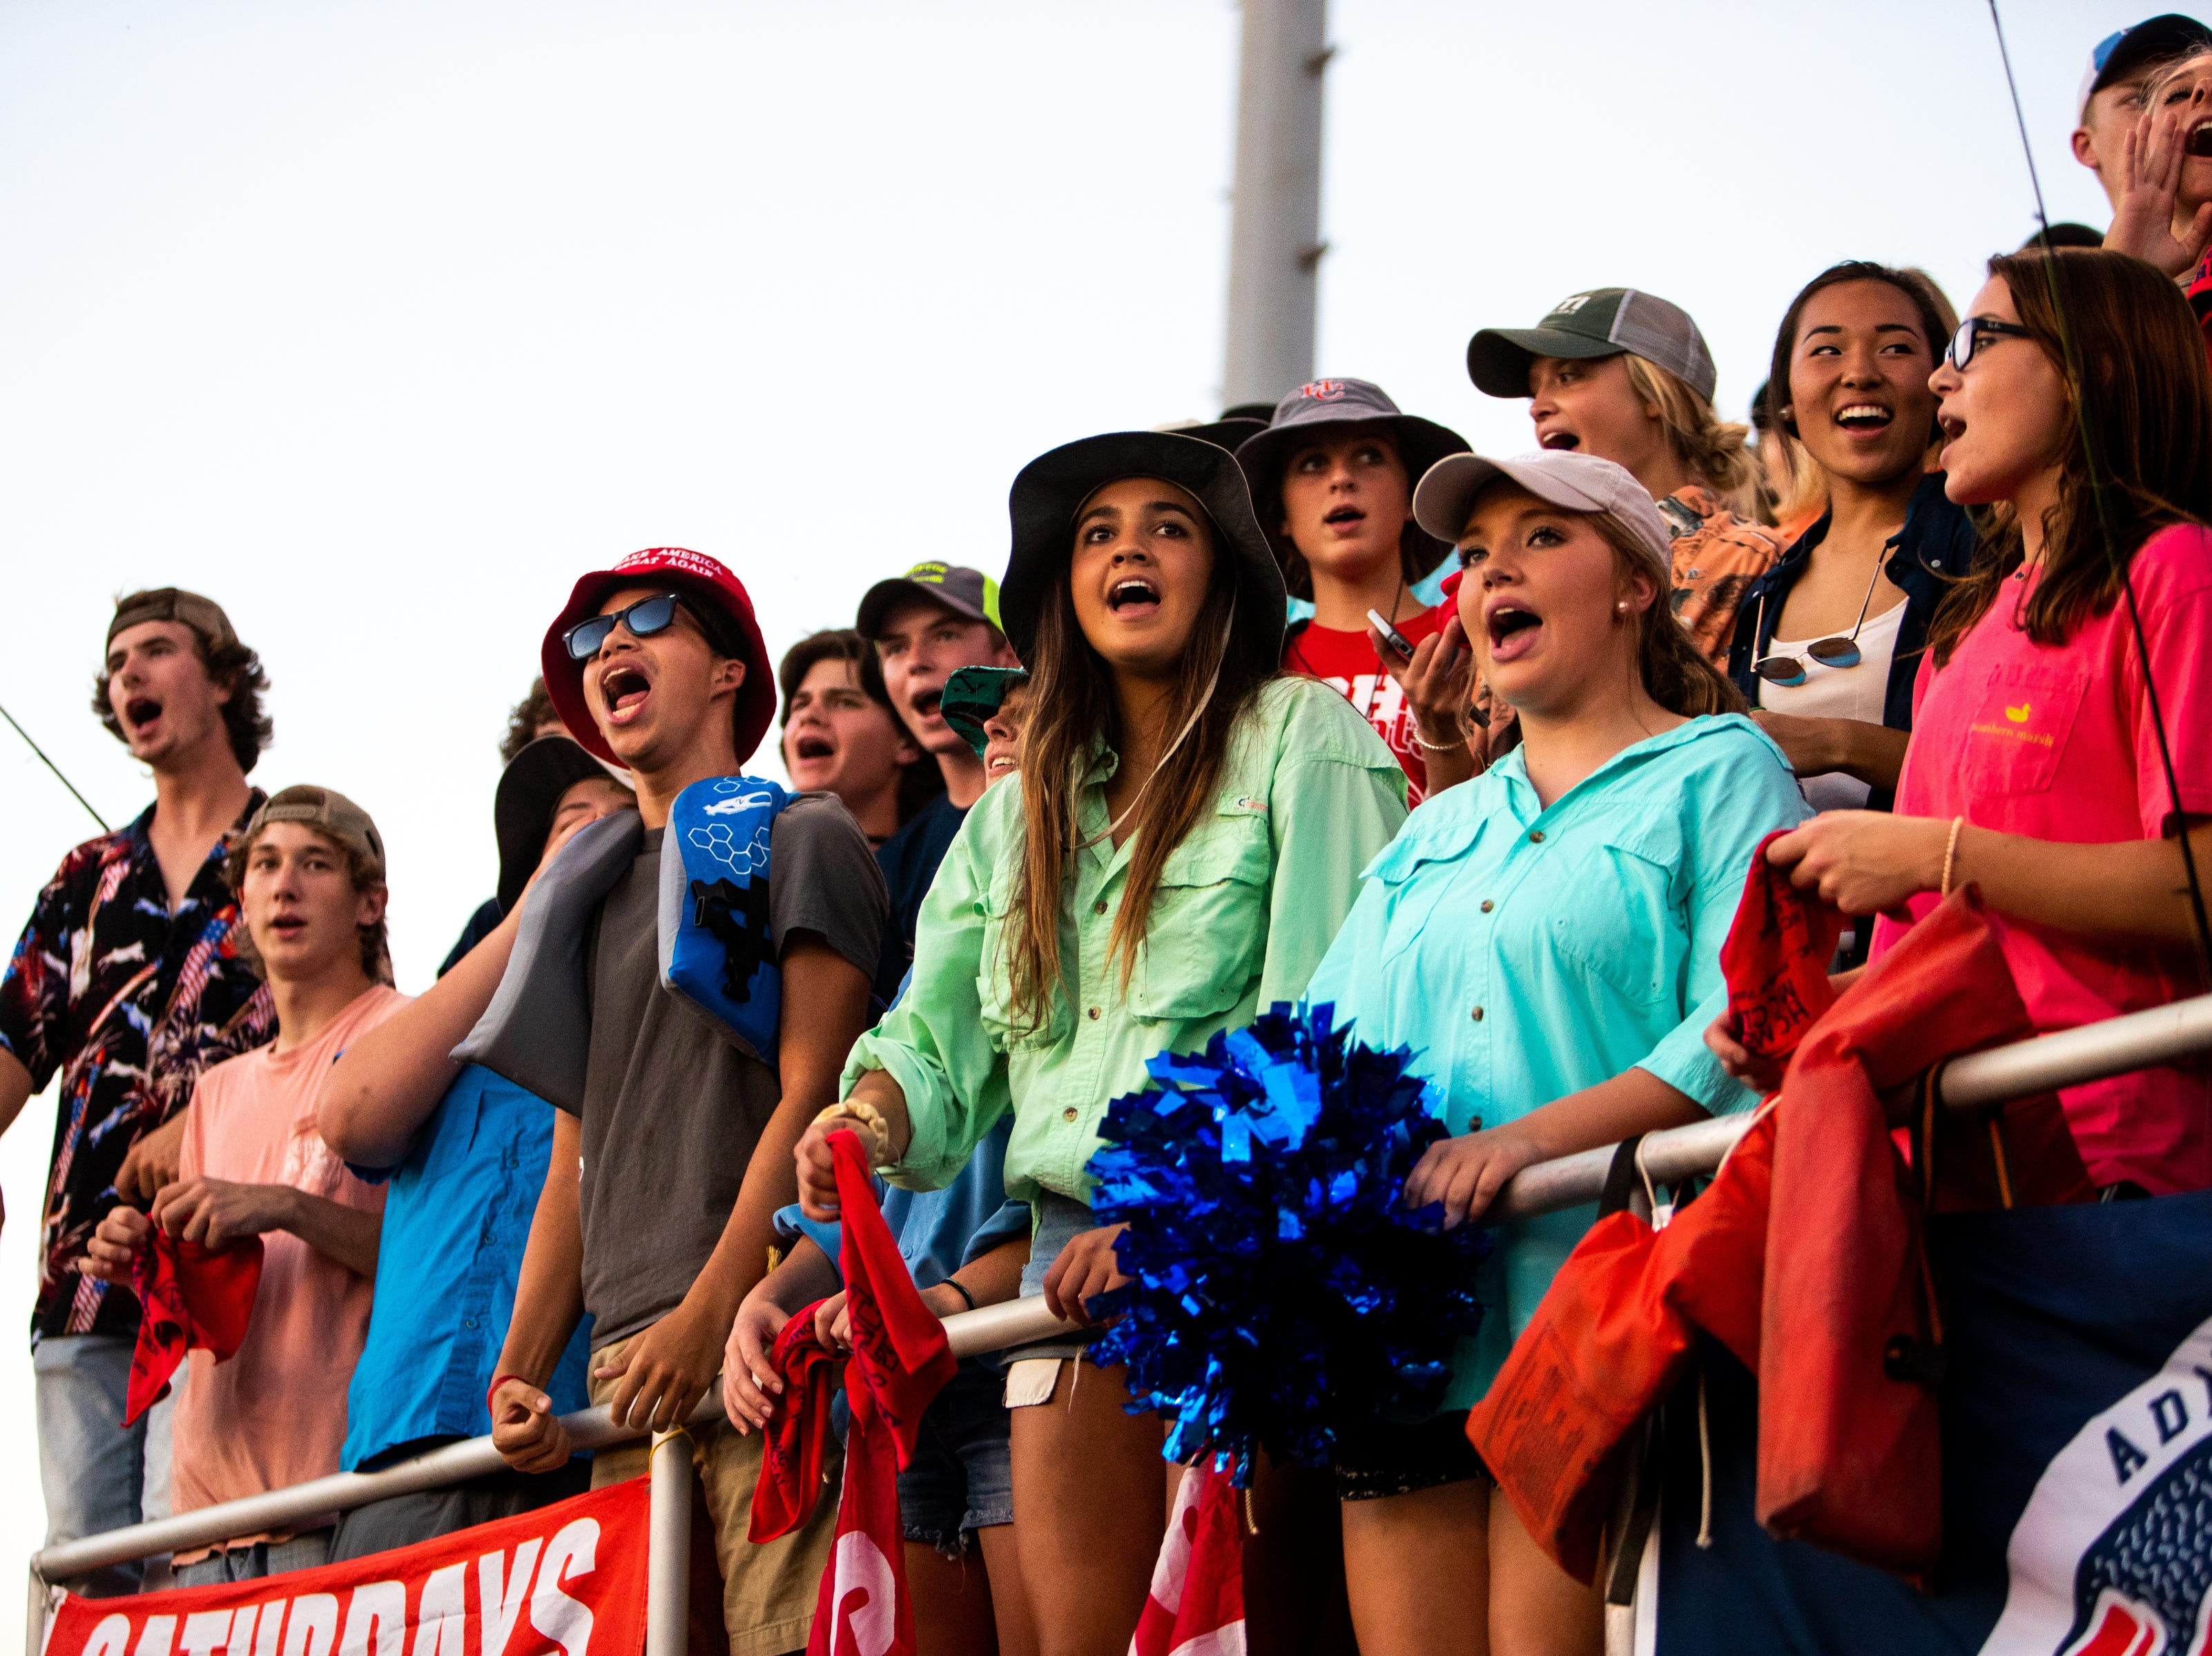 Henry County students cheer for their team during the first half at Henry County Friday, Sept. 14, 2018, in Paris, Tenn.